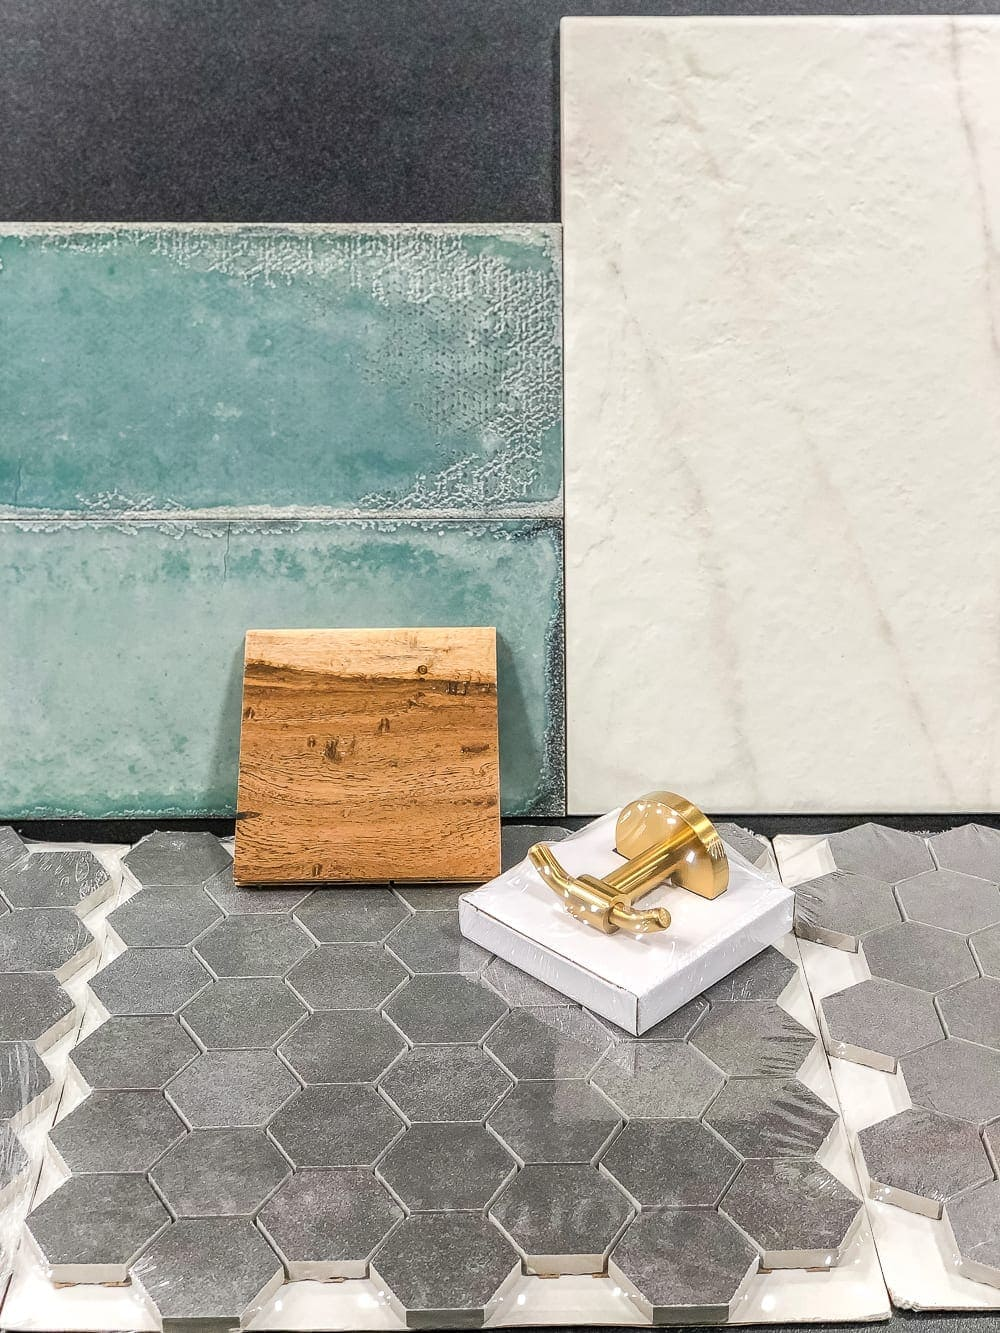 Our new favorite tile and flooring resource Floor & Decor + 3 bathroom design plans for moody, beachy, and cottage styles.